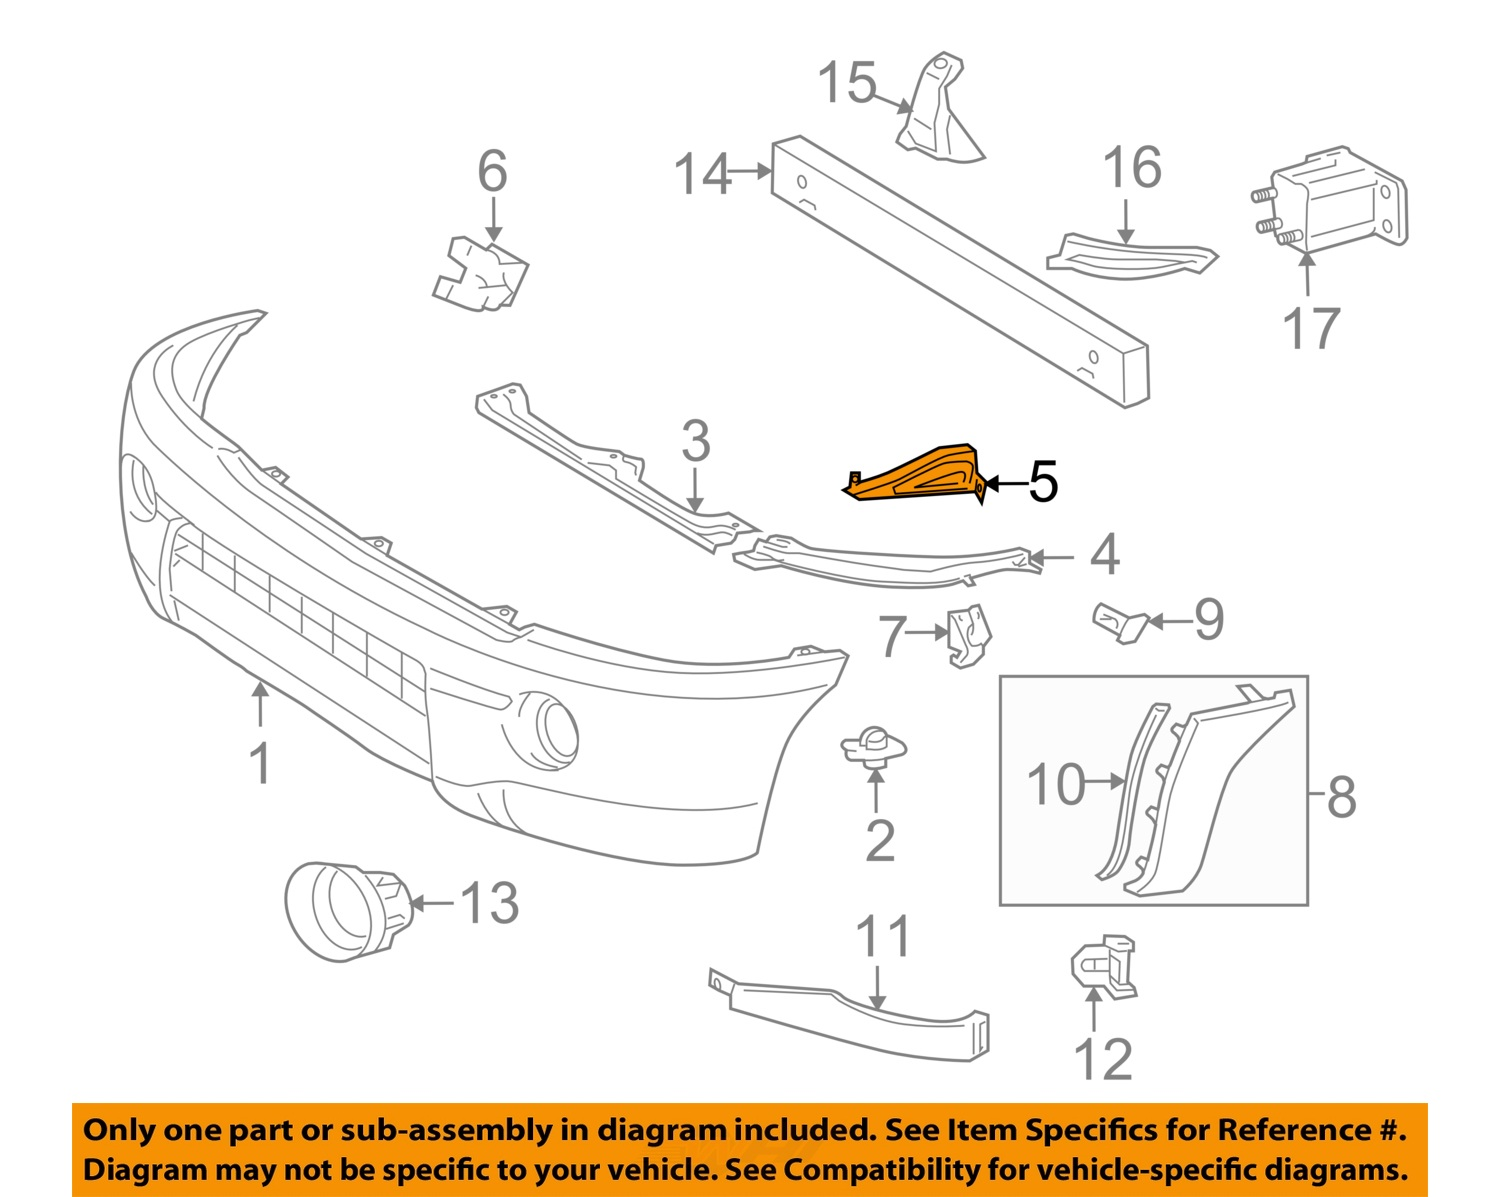 Drains furthermore Dodge Charger 2 7 Engine Diagram together with Scion Tc Stereo Wiring Diagram as well 818587 Fuse Panel Diagram as well 56fne Dodge Durango 2004 Dodge Durango 4 7 Power Leaving. on toyota sienna rear door parts diagram view